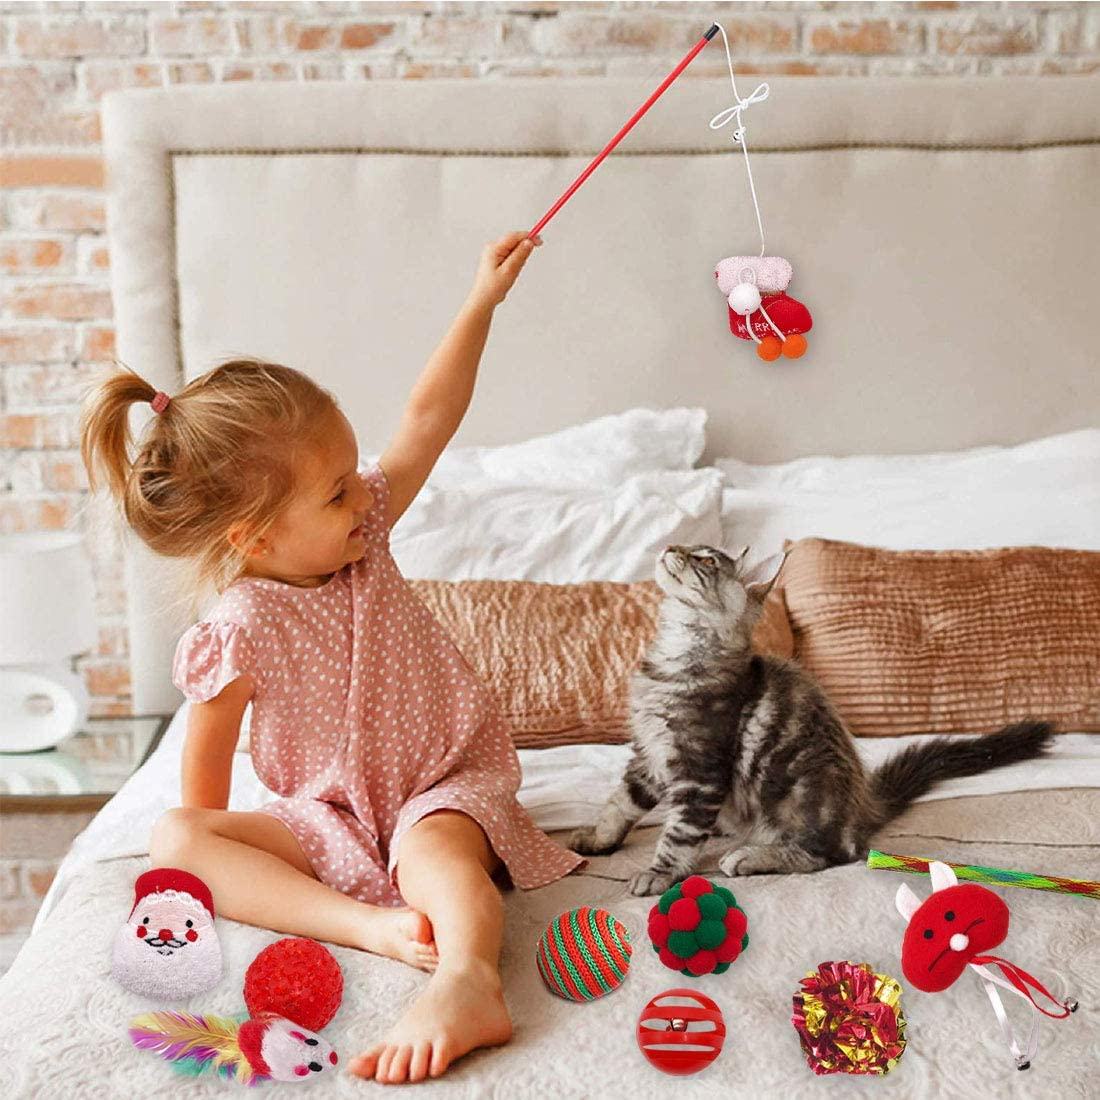 Best Gift for Cat 10PCS YUESEN Christmas Cat Toys,Cat Presents Cat Xmas Toys Set Interactive Variety Pack mouse feather cat plush toys for indoor catnip toys for kitten Toys for Indoor Cats